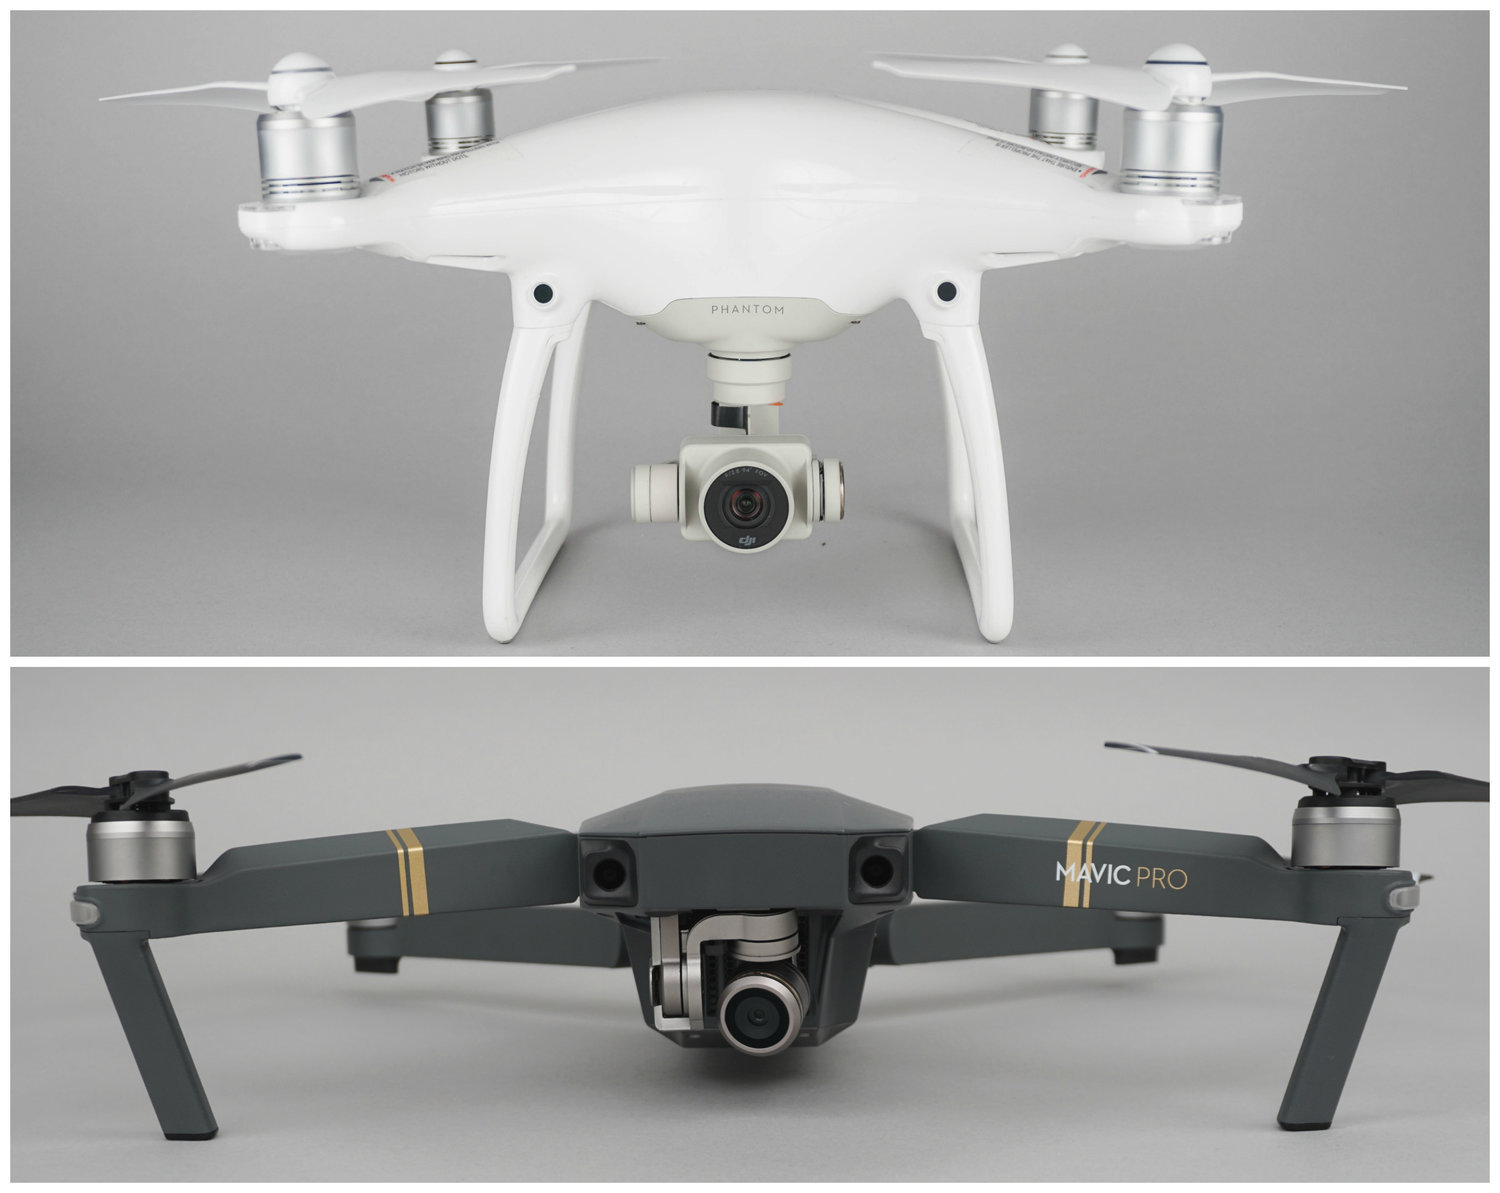 Both drones differ in size and functionality